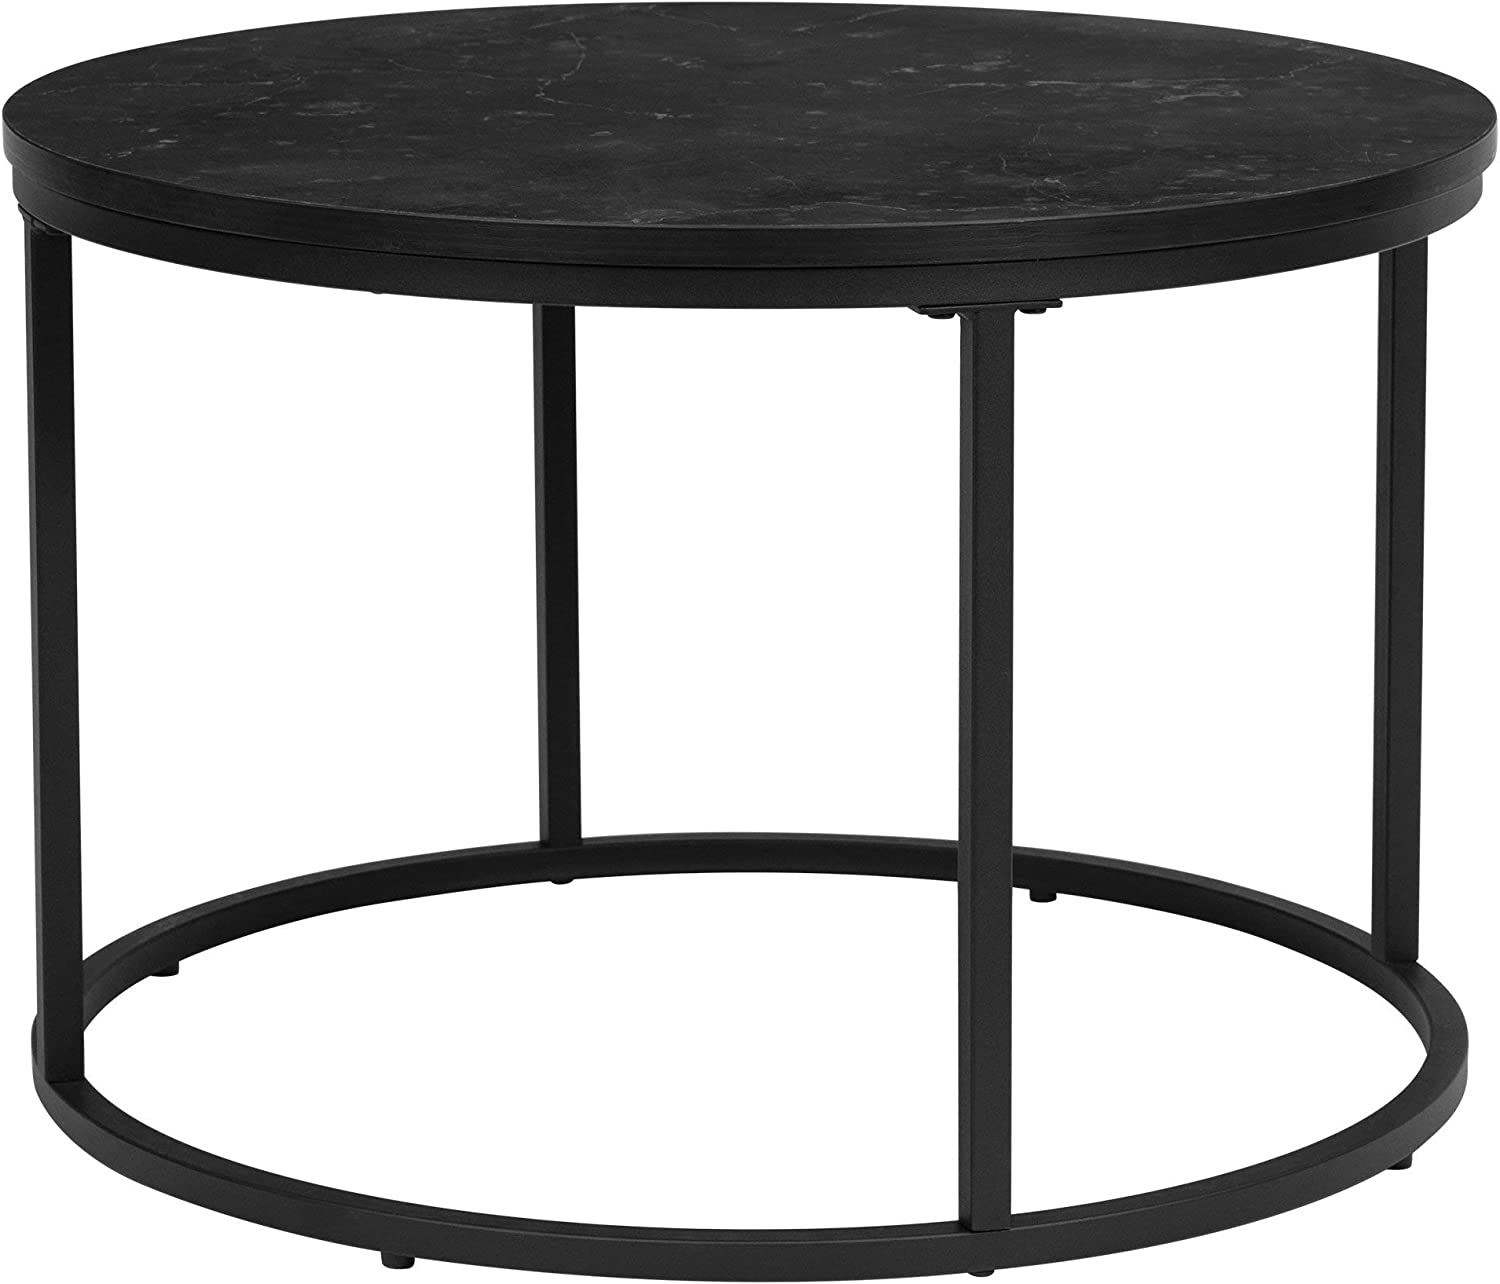 Ball & Cast Round Table, Black